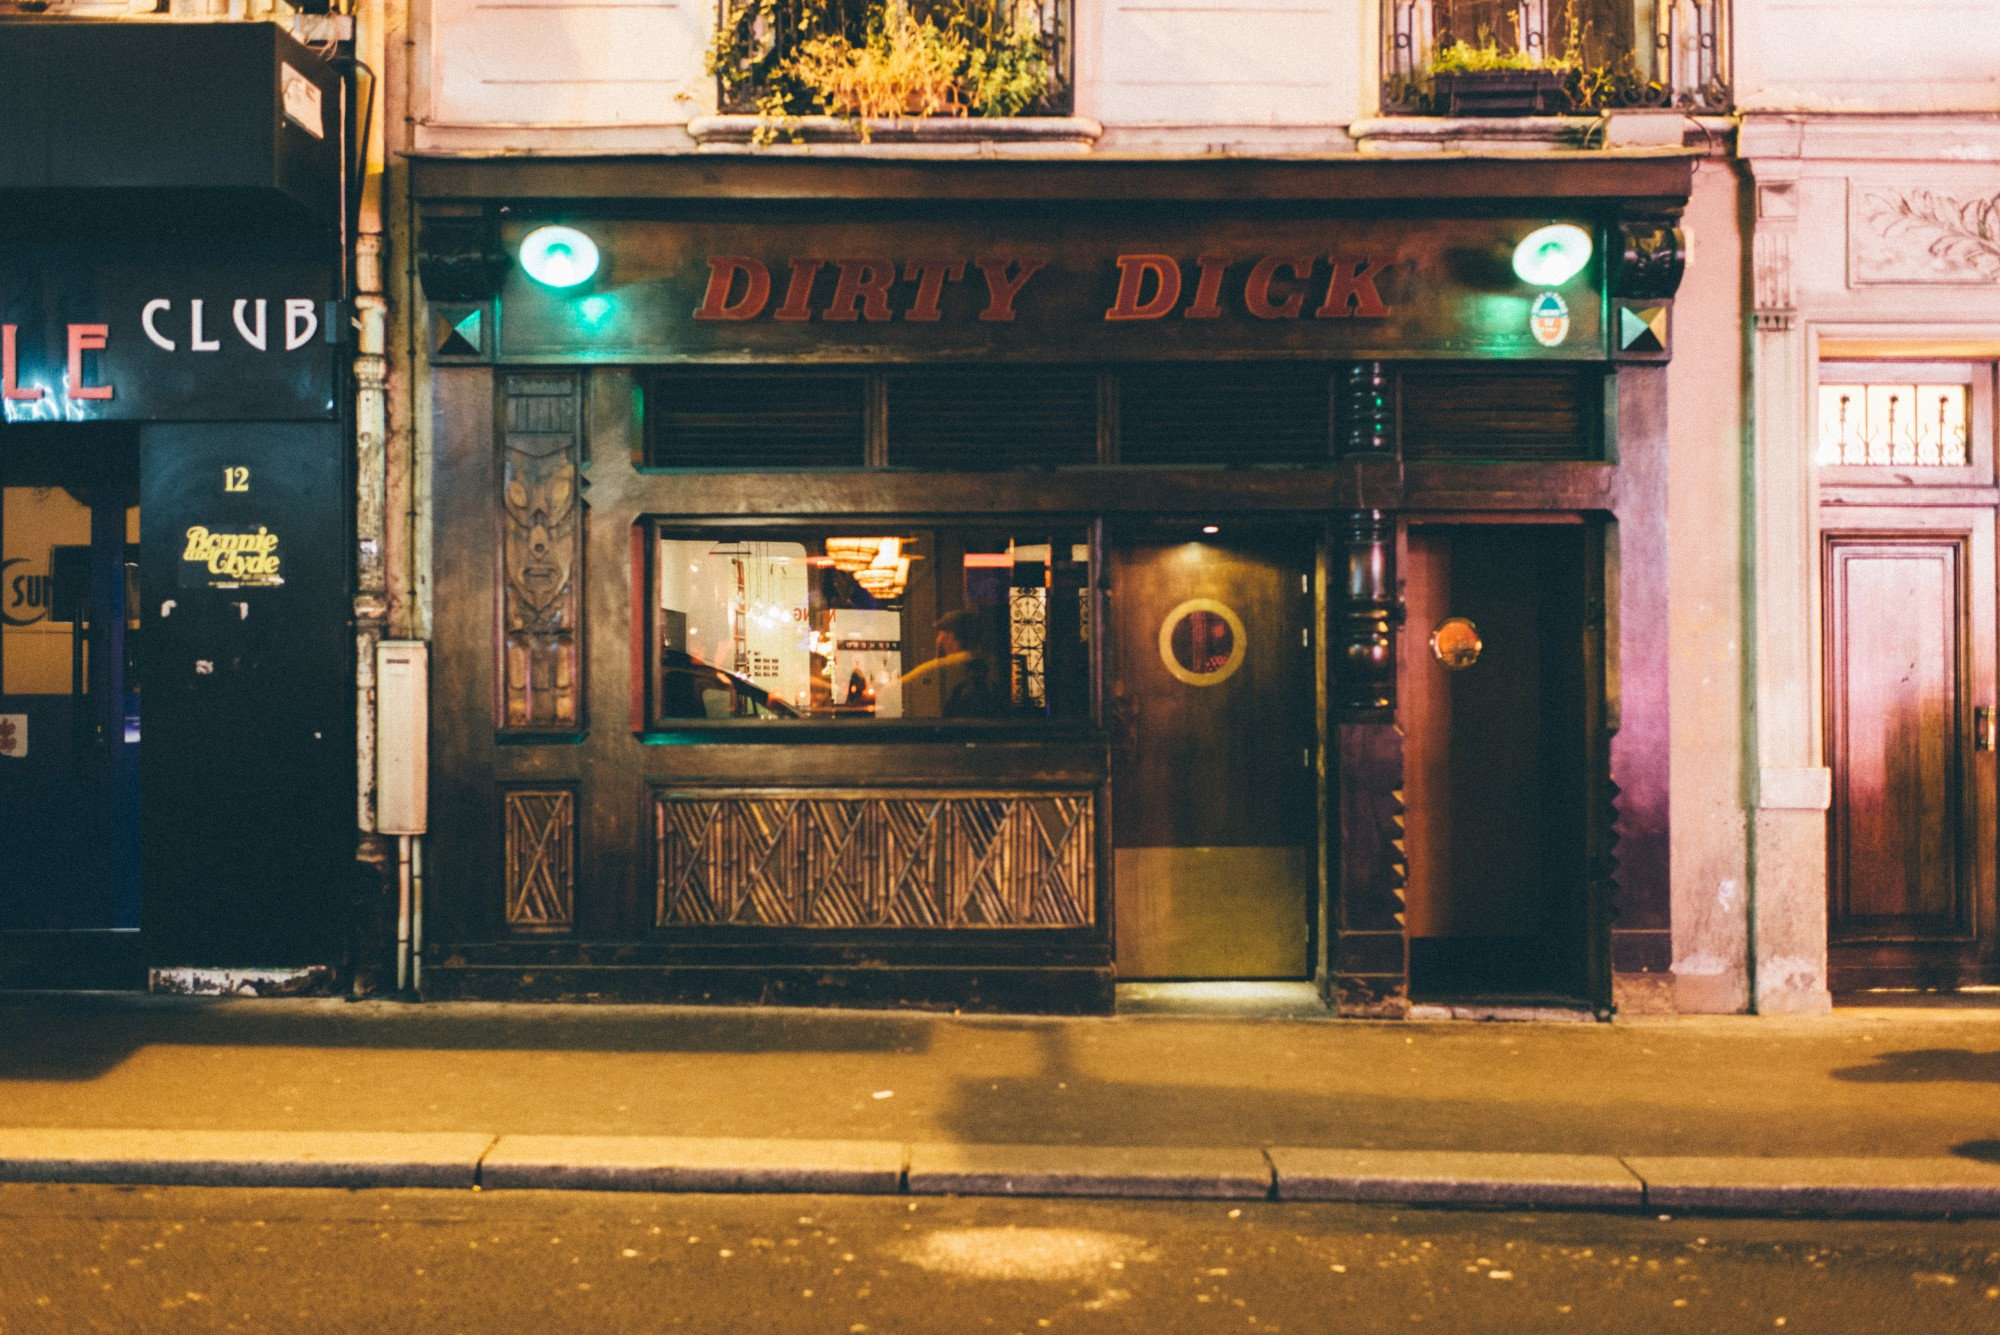 HiP Paris blog. The 3 most outrageous cocktails in Paris. Street view of Dirty Dick, 10 rue Frochot. Photo by Jean-Marie Heidinger.